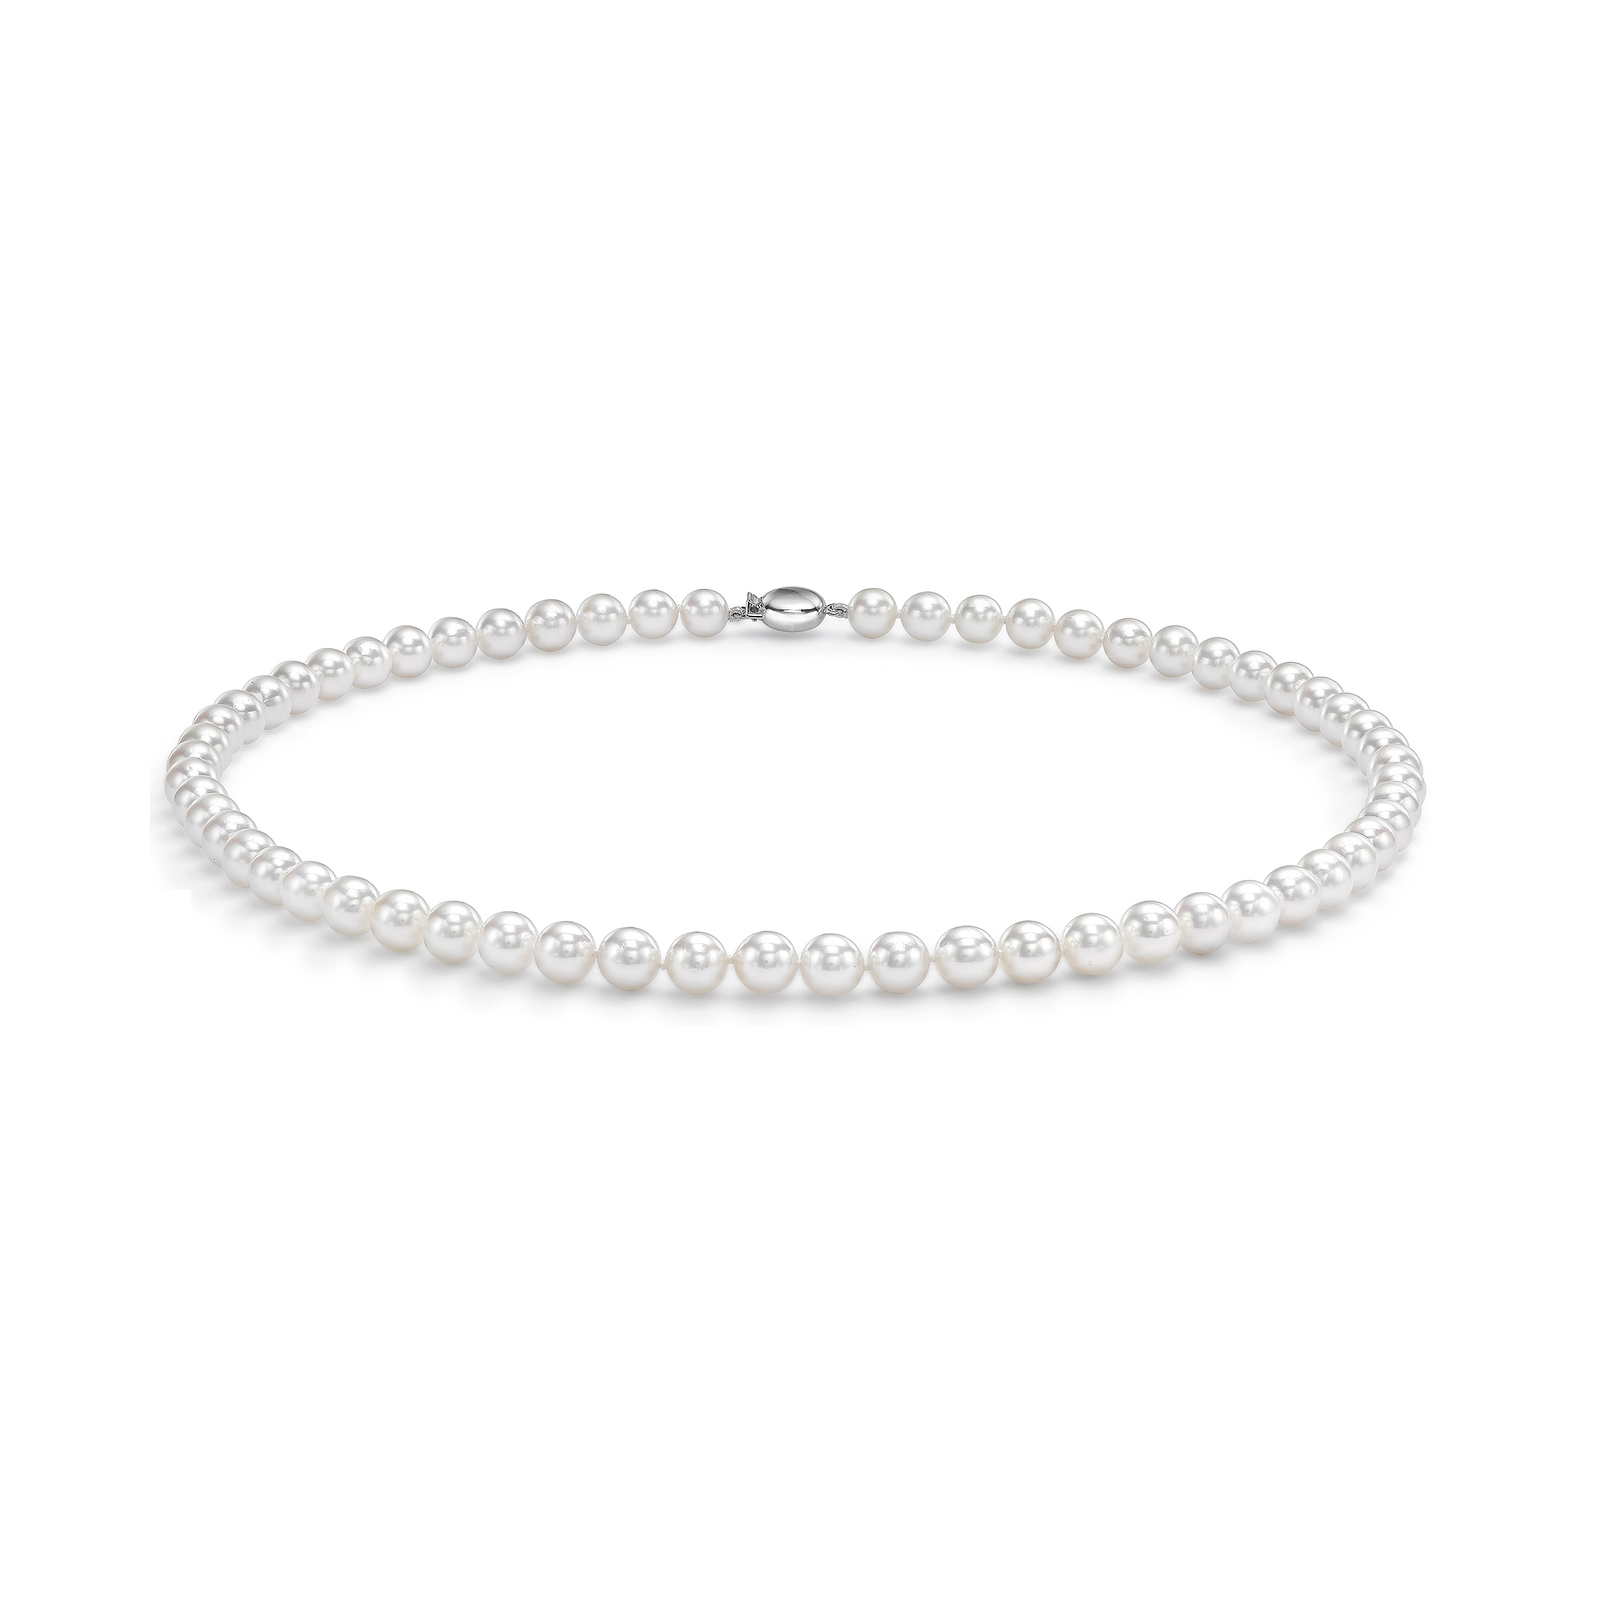 18ct White Gold 8.5-9.0mm AAA Akoya Pearl Necklace